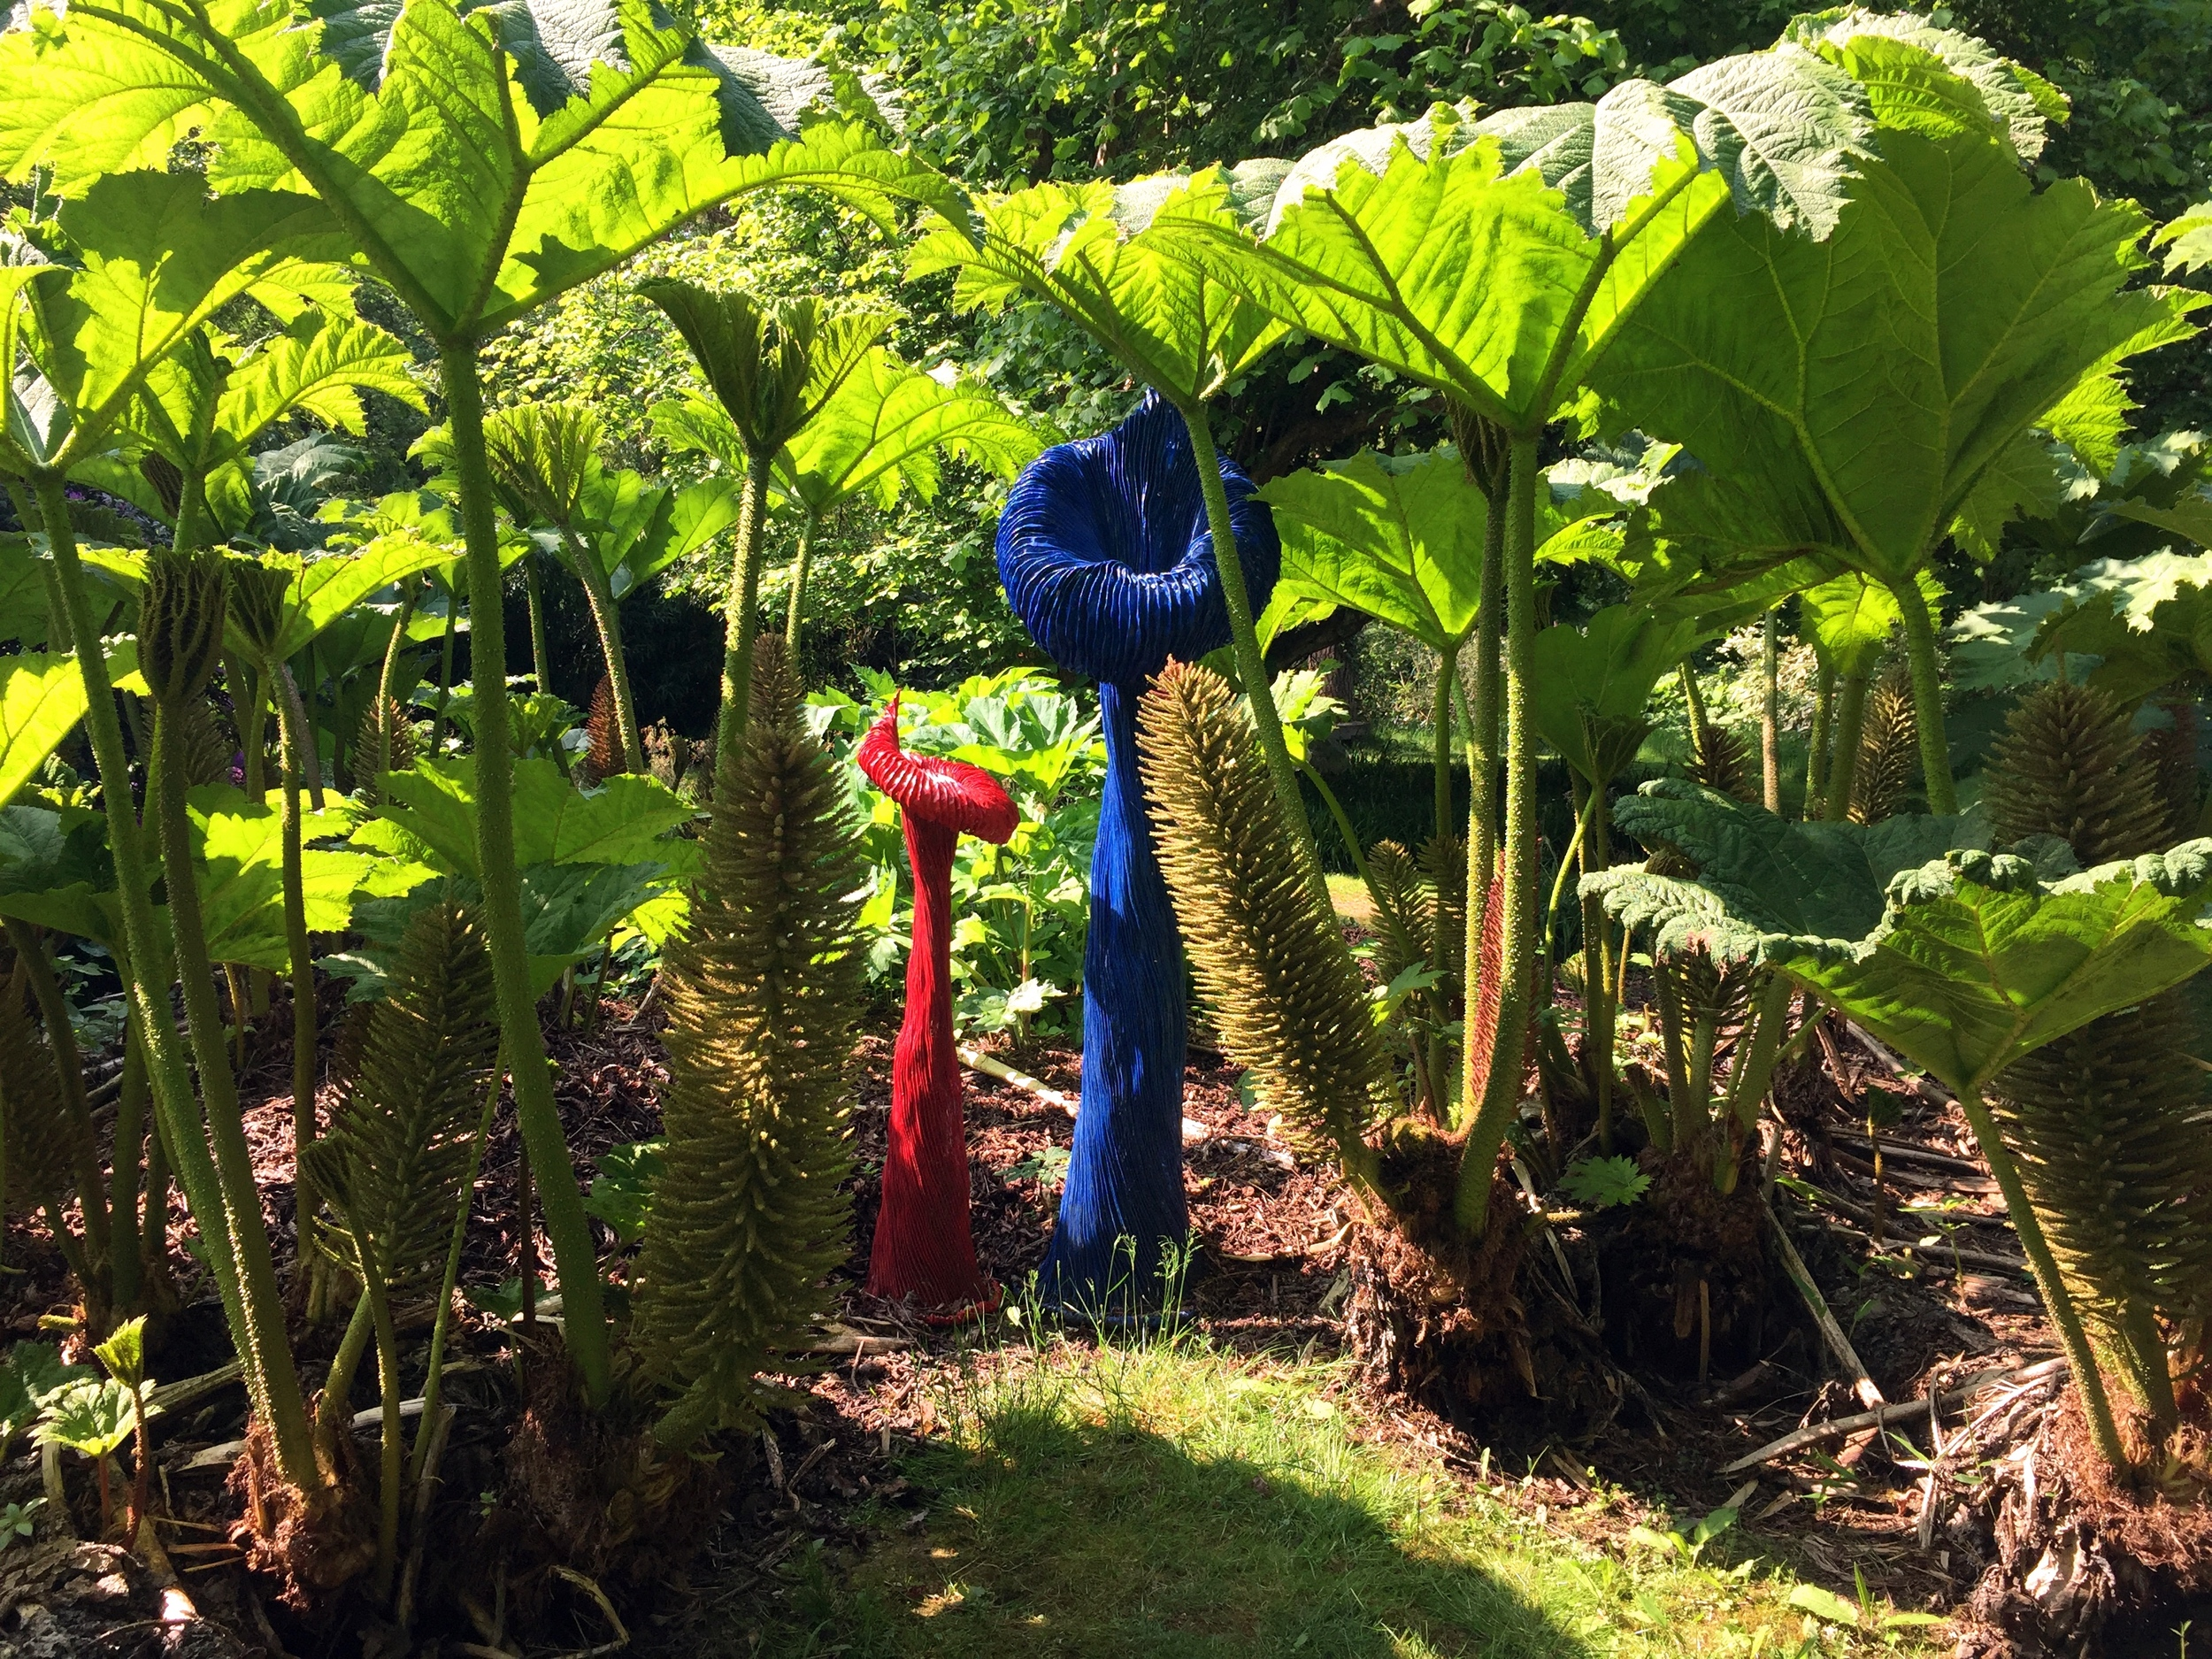 'Villosa' by Carole Andrews, in the Gunnera Manicata,.jpg